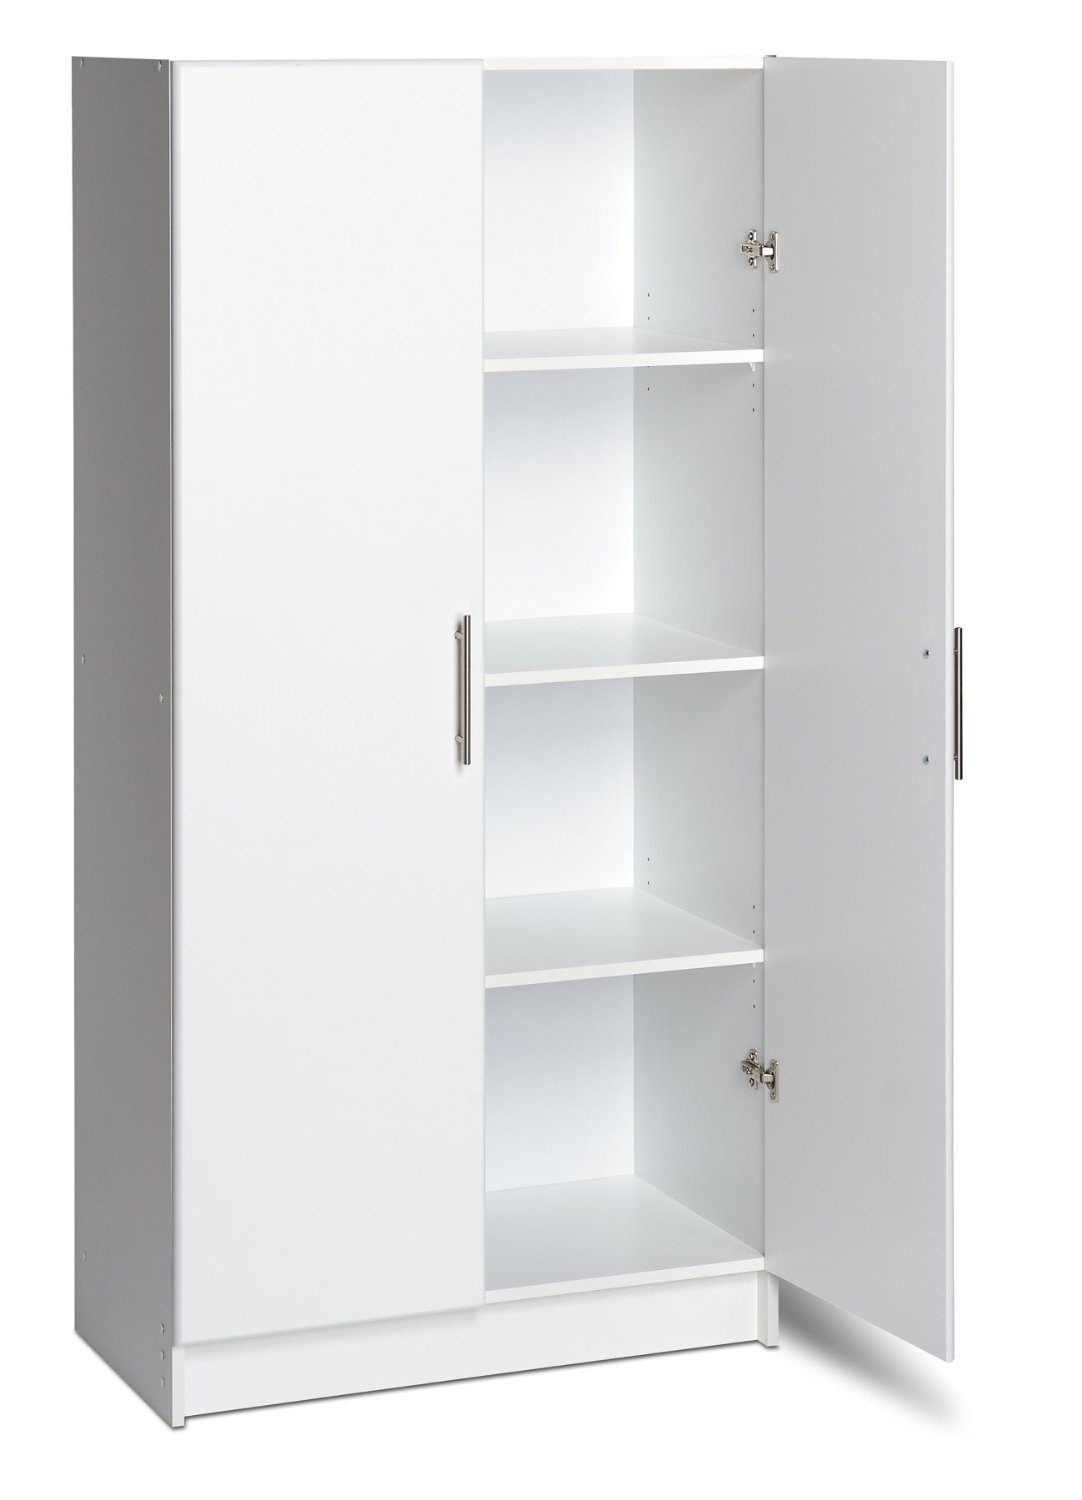 Storage Cabinets with Doors and Shelves Ikea Beautiful 16 Ikea Canada Storage Cabinets Breathtaking and Interesting